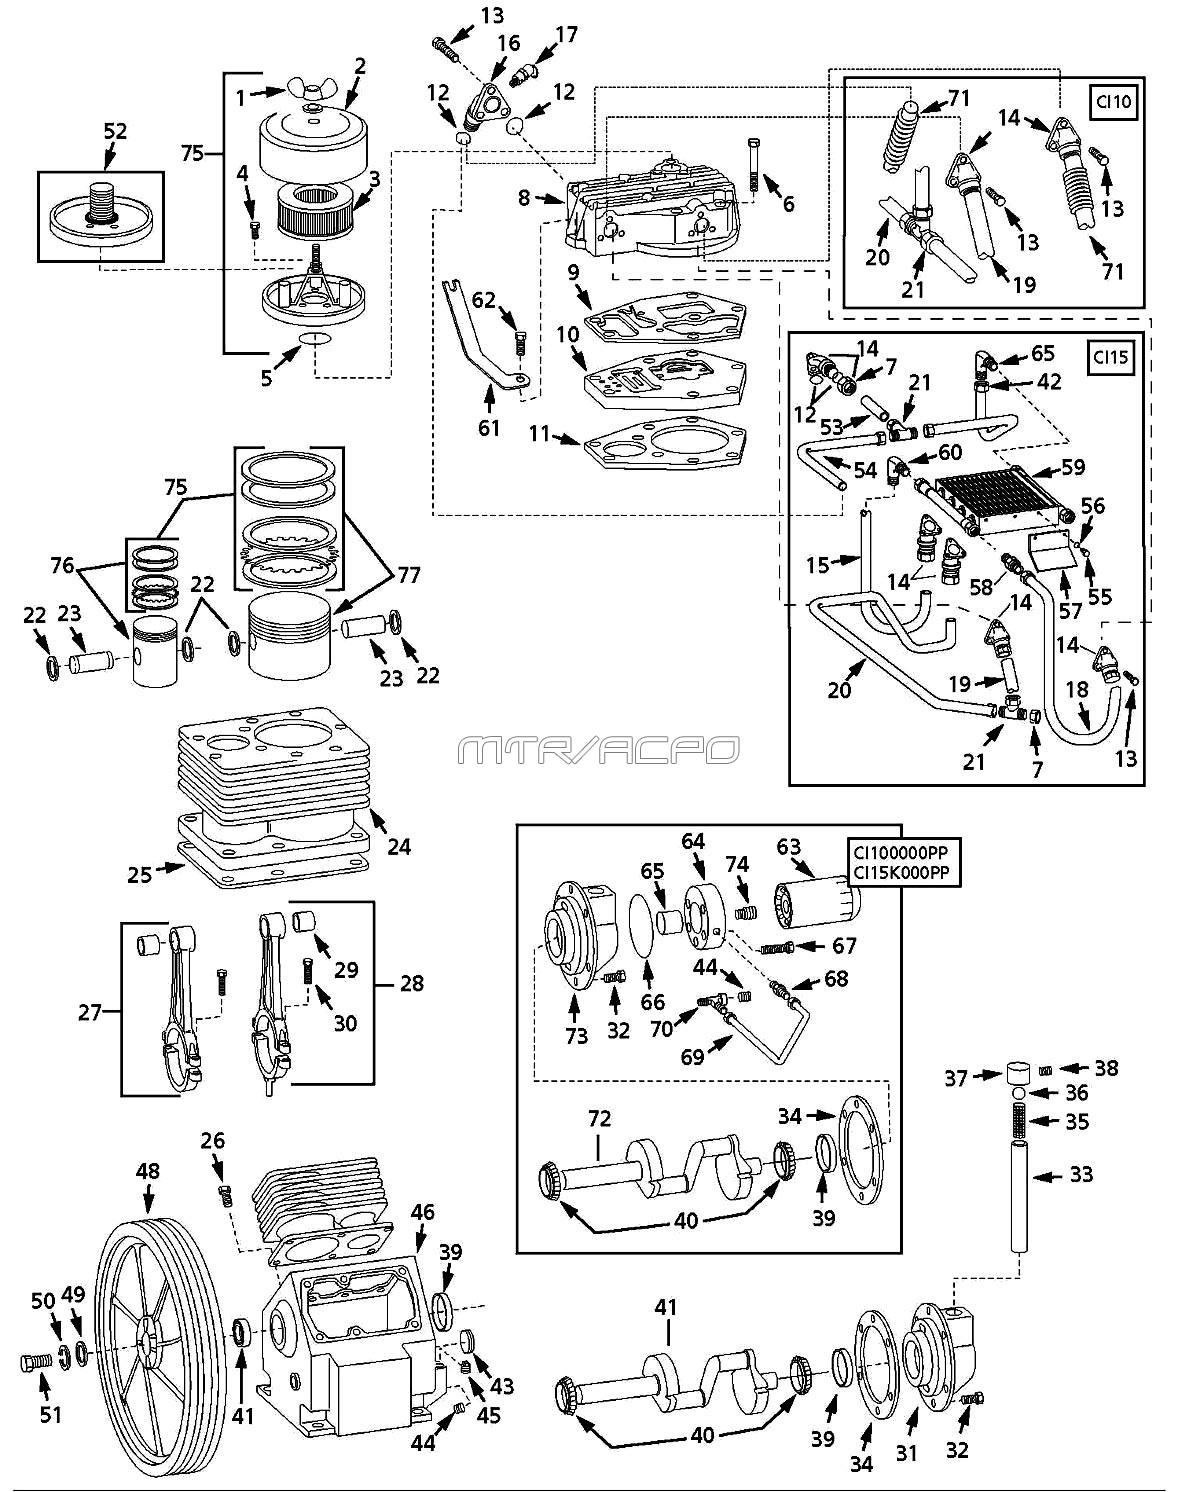 5Z405A - Air Compressor Pump Parts schematic